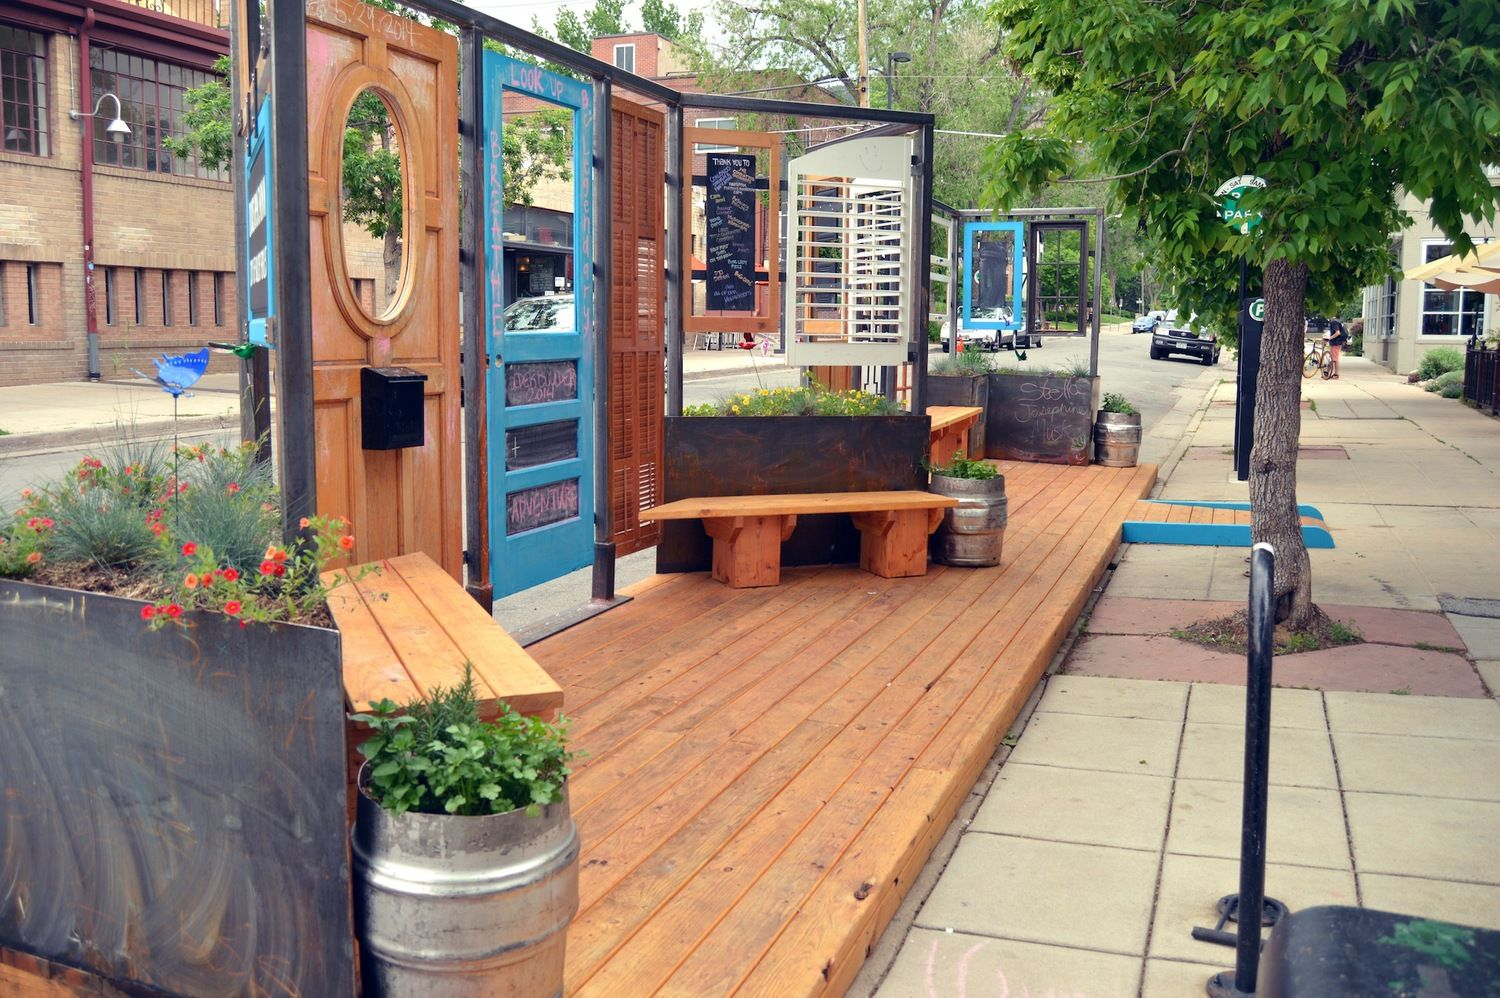 The best Parklet ever in the Historic Hill District in Boulder,Colorado. Get some coffee and treats and just chill.